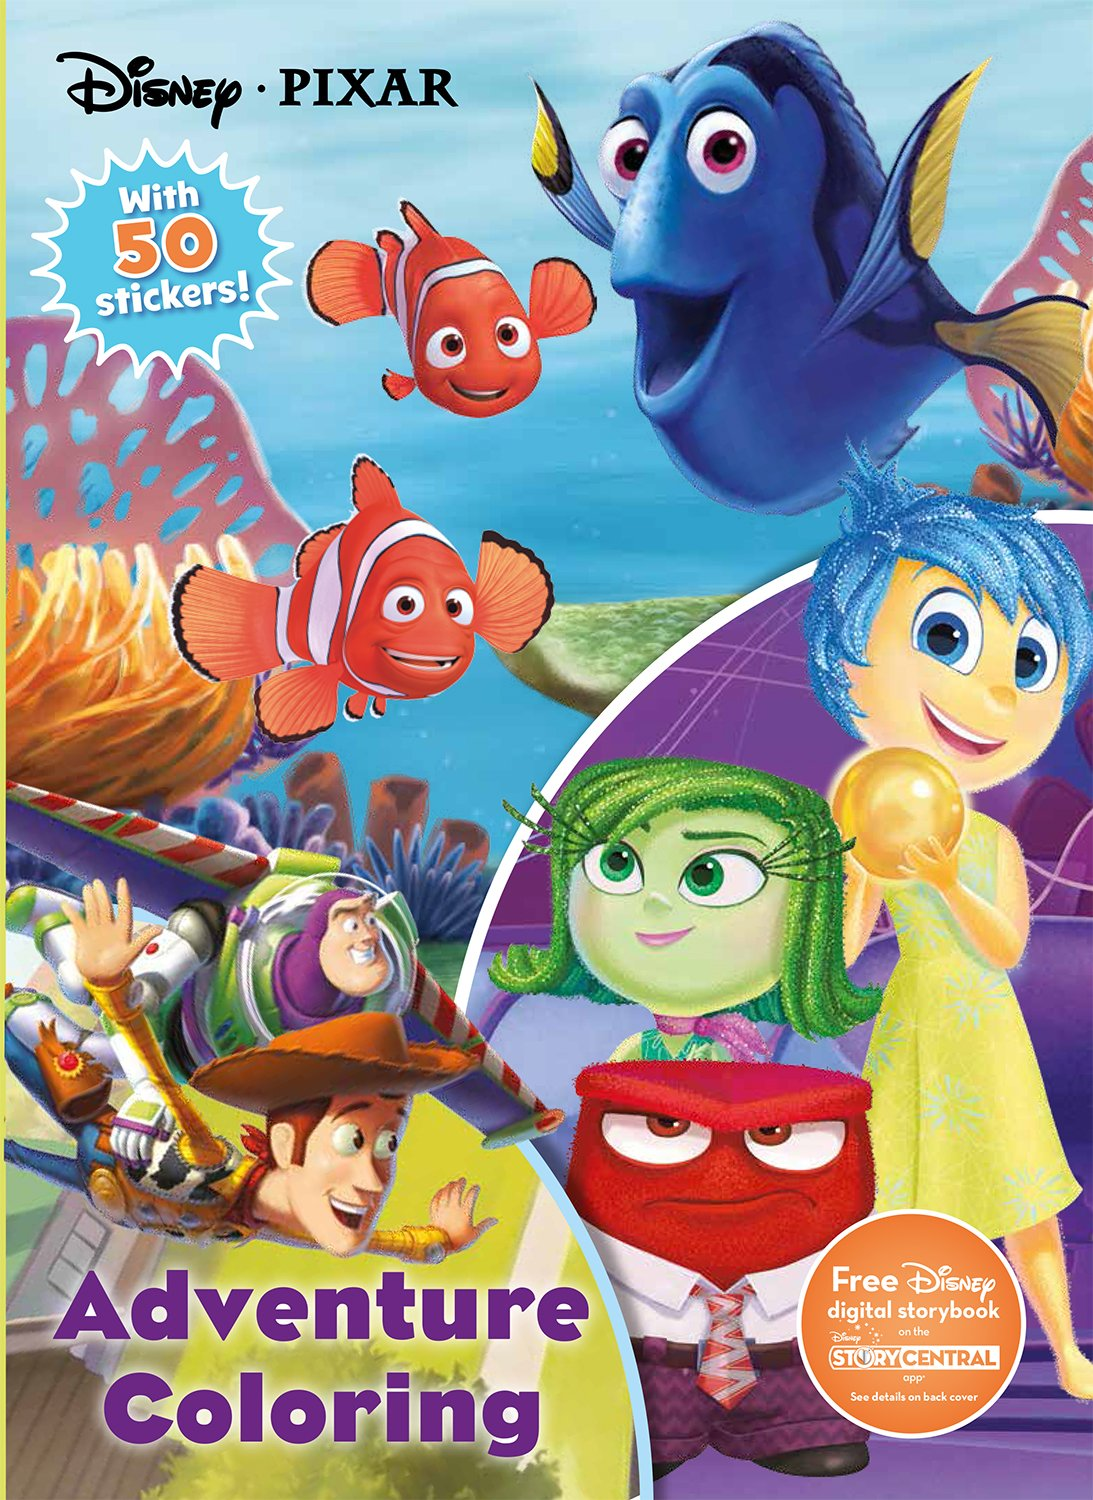 Disney Pixar Adventure Coloring Jumbo Coloring With 50